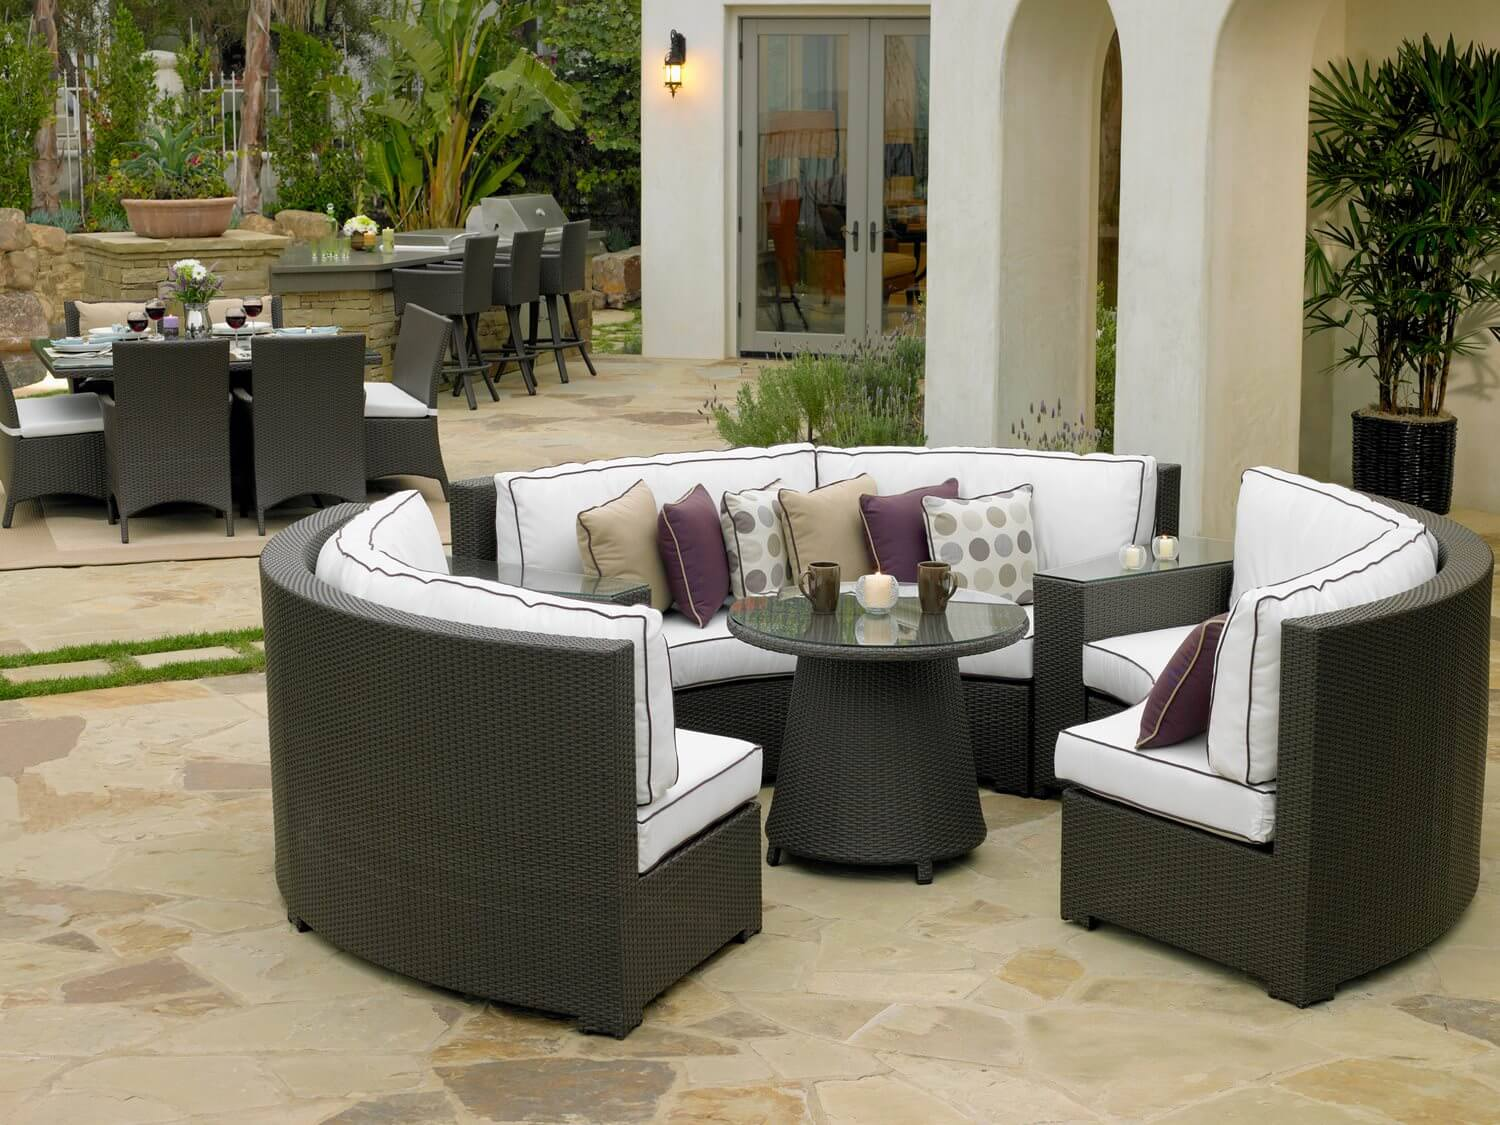 patio dining tables amazing modern round patio dining table and seating JMFQTRD